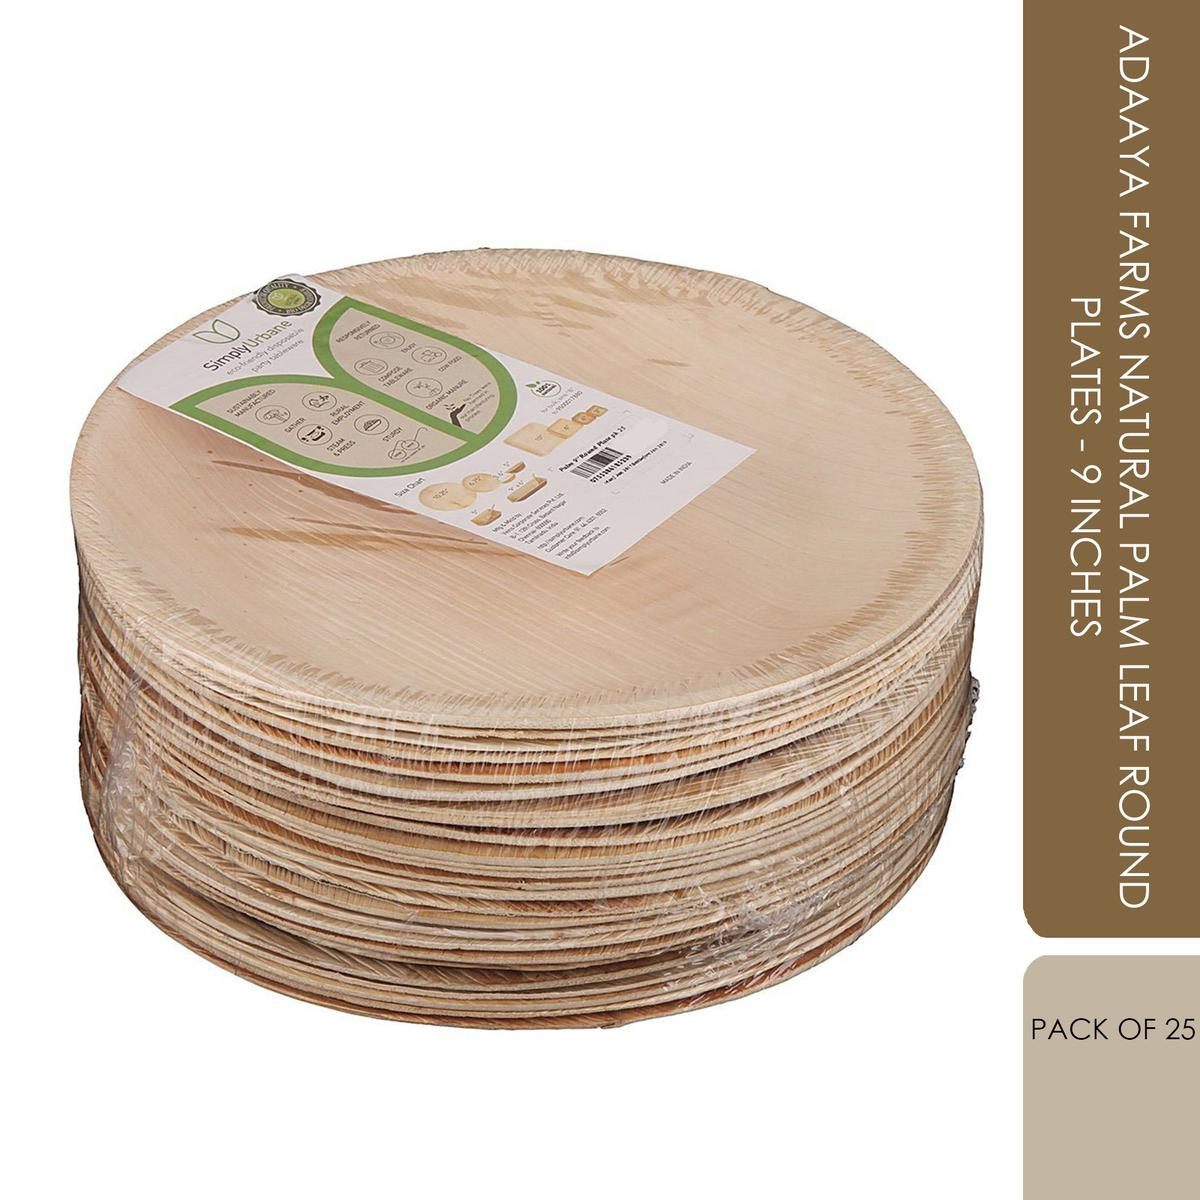 Adaaya Farms Natural Palm Leaf Round Plates - 9 Inches (Pack of 25)